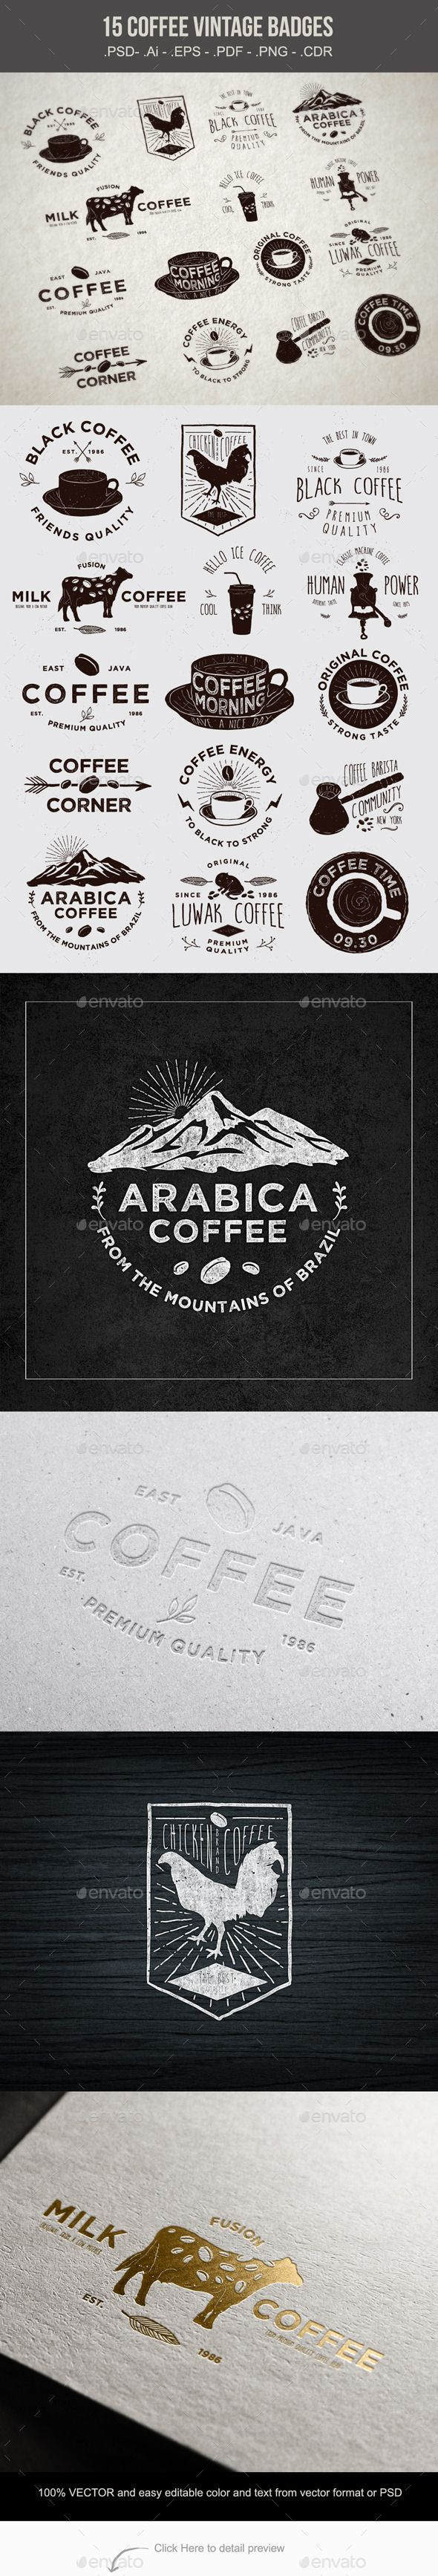 15 Coffee Vintage Badges Vector Template #design Download: http://graphicriver.net/item/15-coffee-vintage-badges/10611993?ref=ksioks